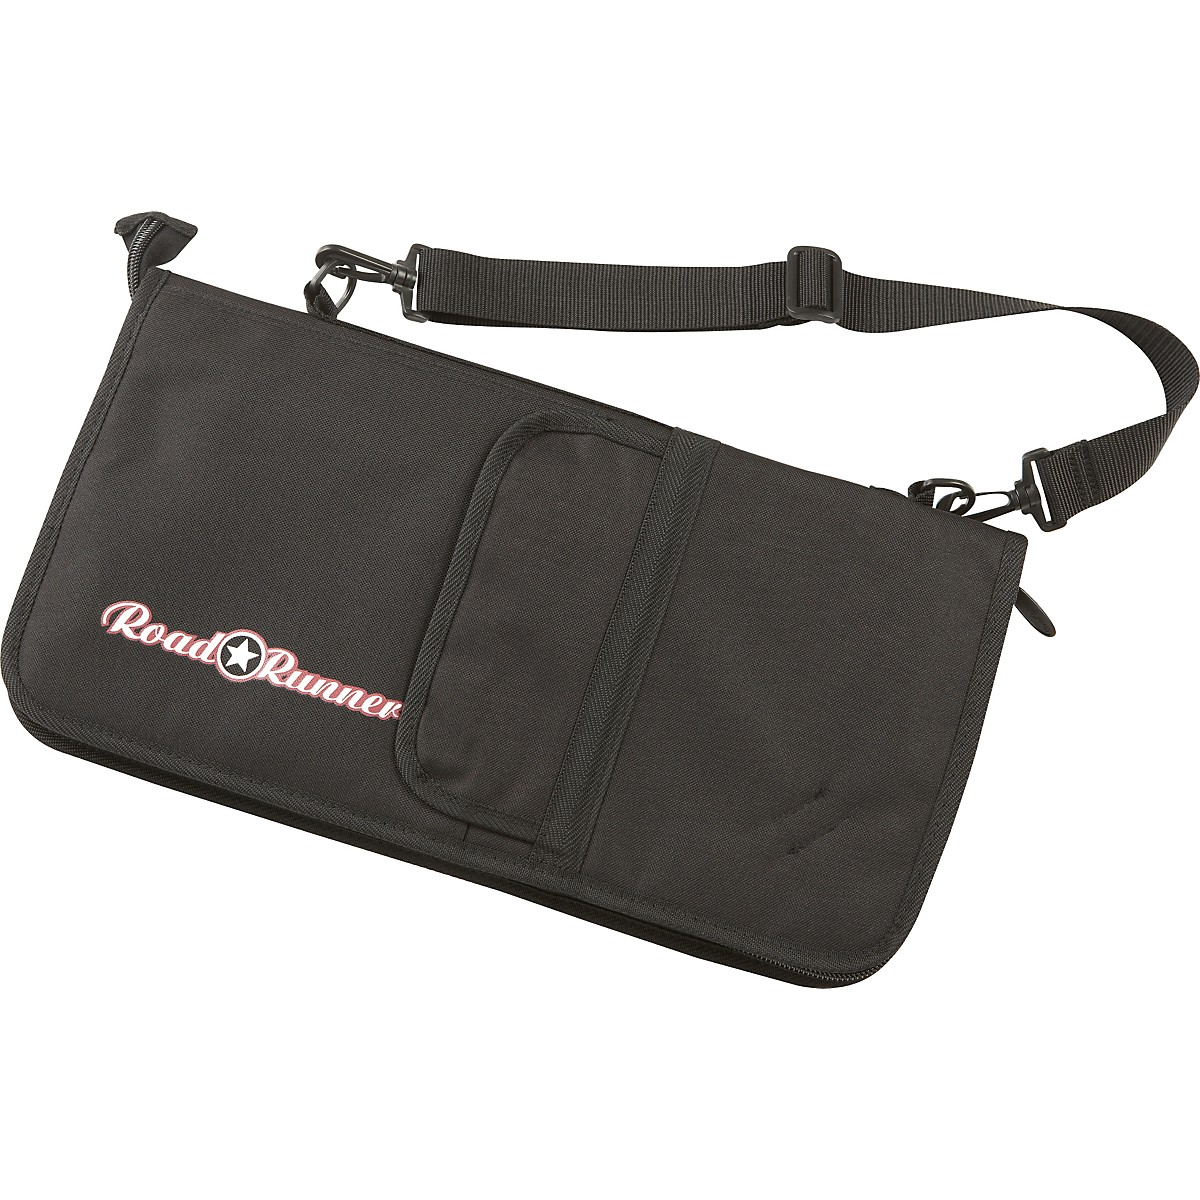 Road Runner Jumbo Stick Bag